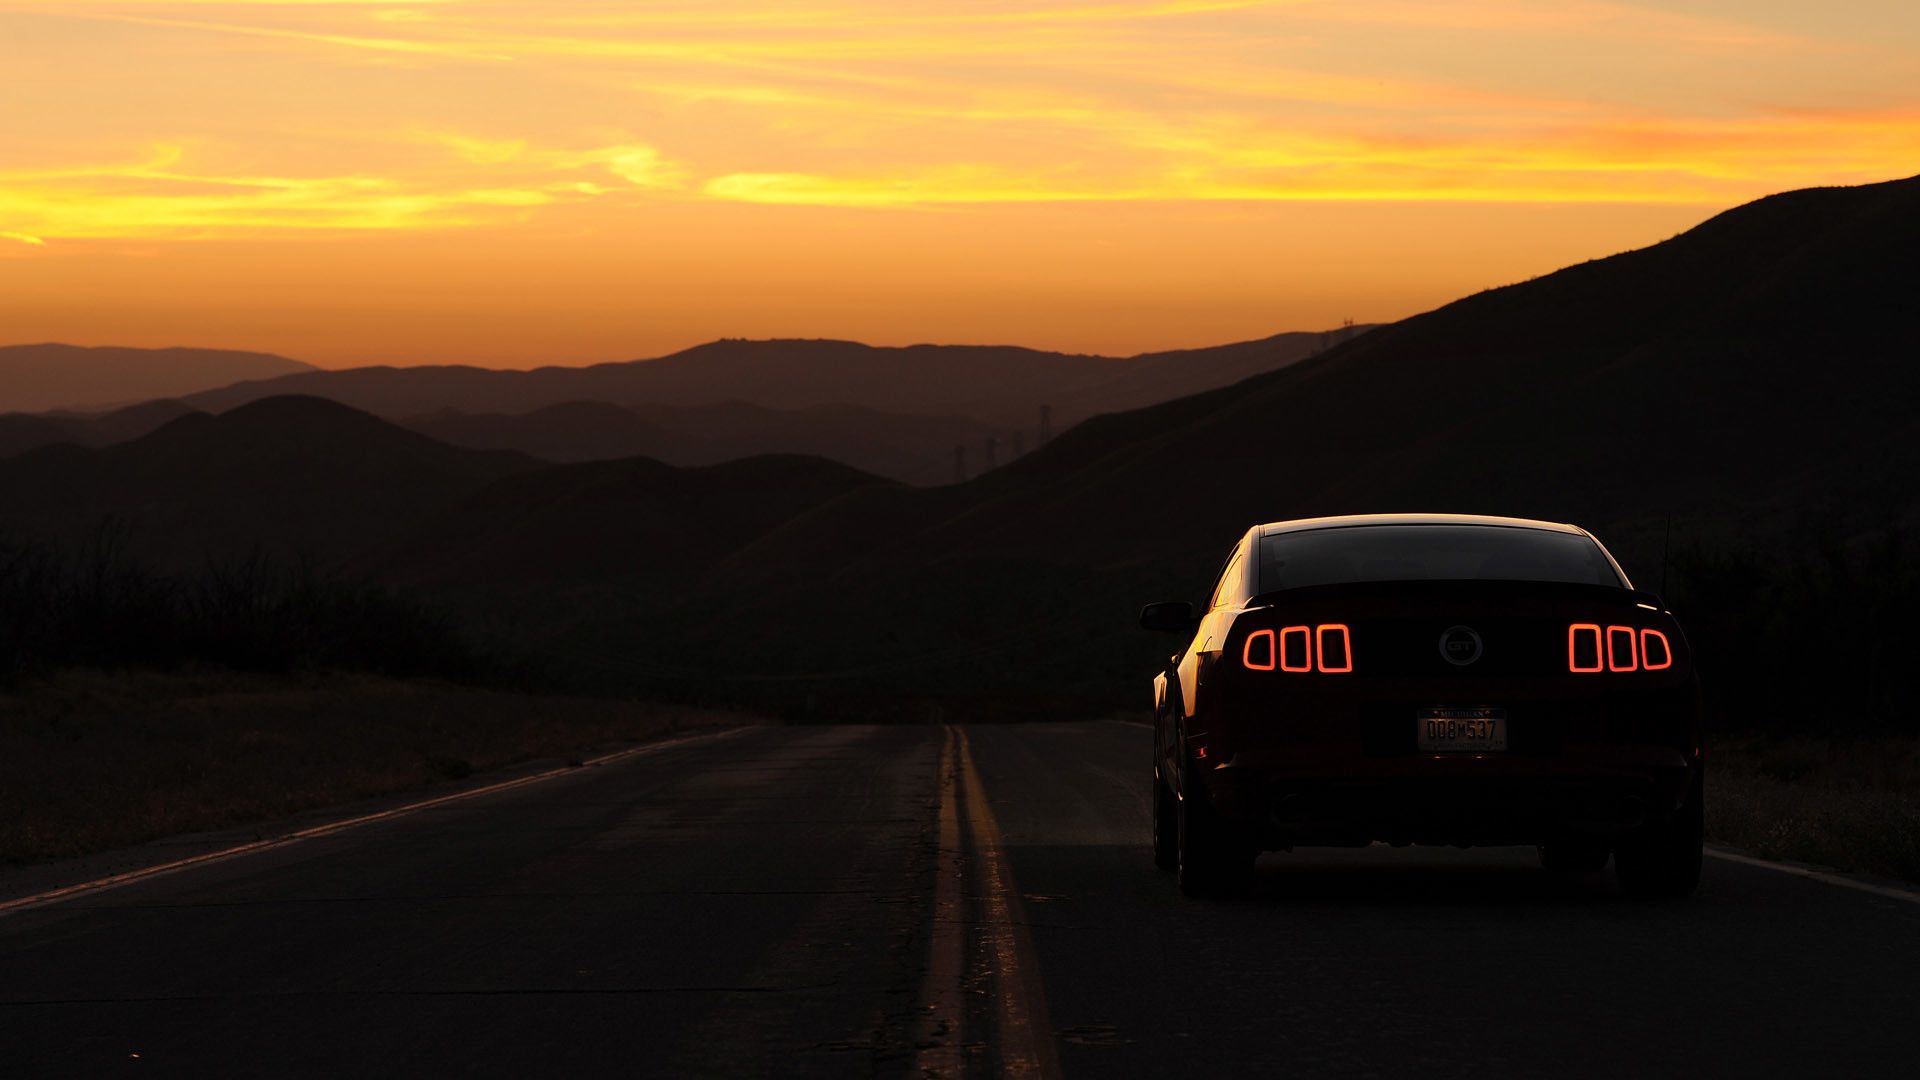 hd wallpapers and background images Mustang Cars Hd Wallpapers For Pc Picture Idokeren